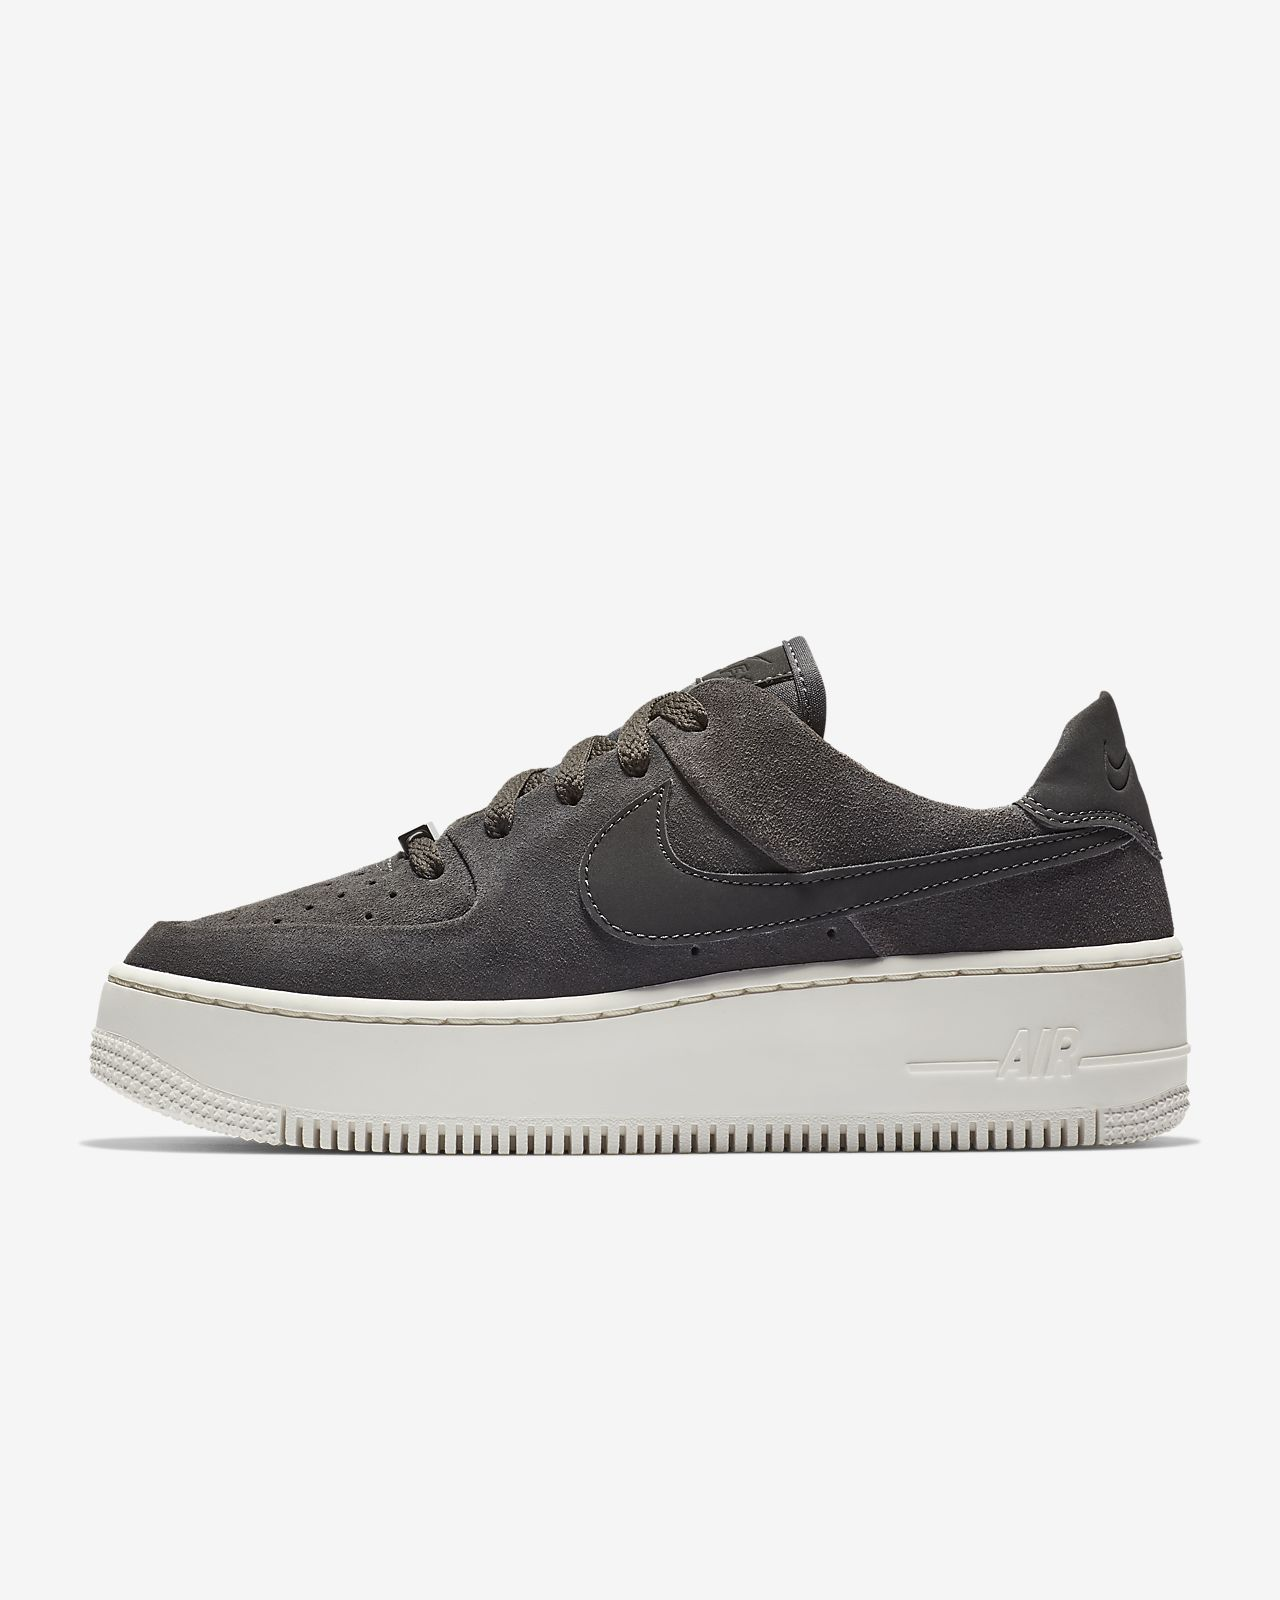 89c68c2b09ae Nike Air Force 1 Sage Low Women s Shoe. Nike.com CH